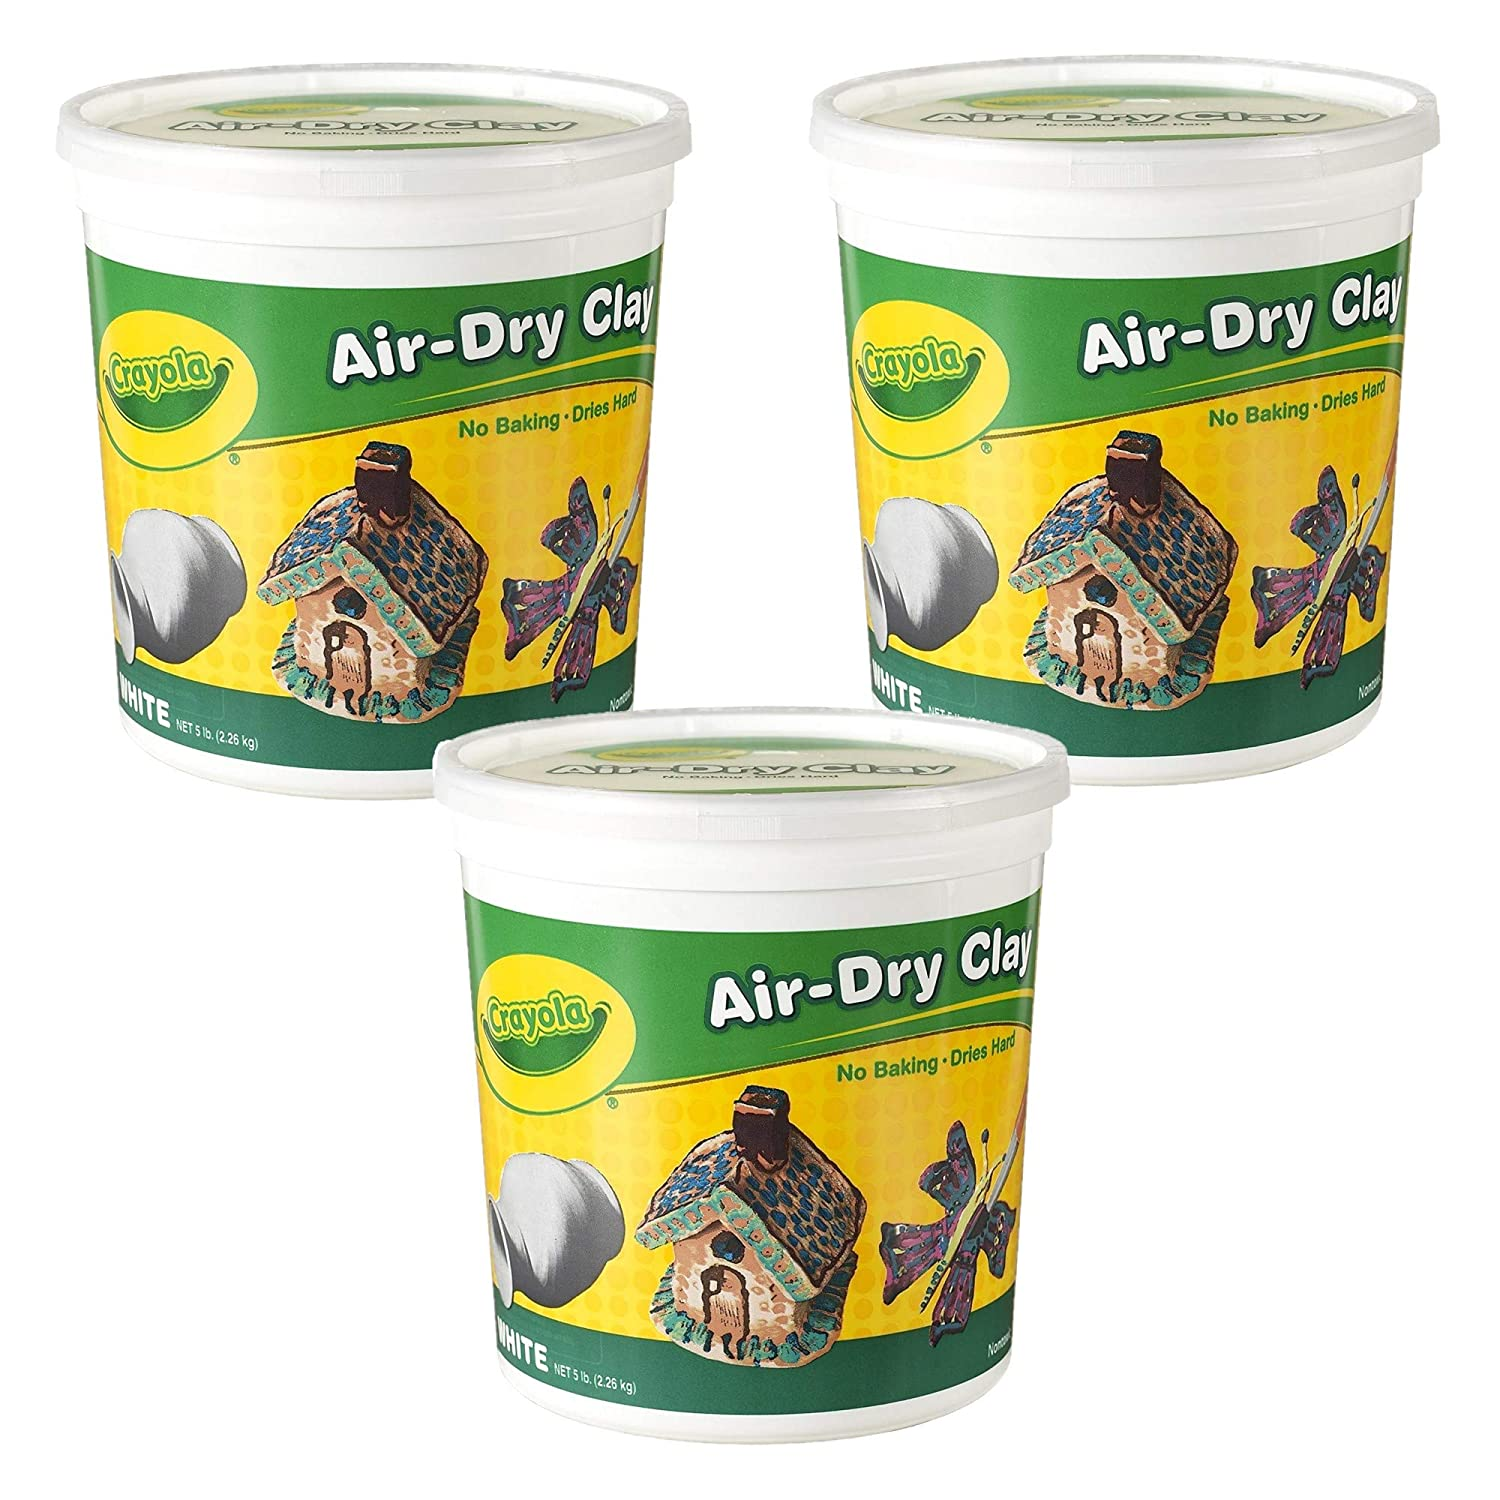 Educational Art Tools Crayola Air-Dry Clay 5 pounds Resealable Bucket White For Classroom 3 Pack 15 pounds Total